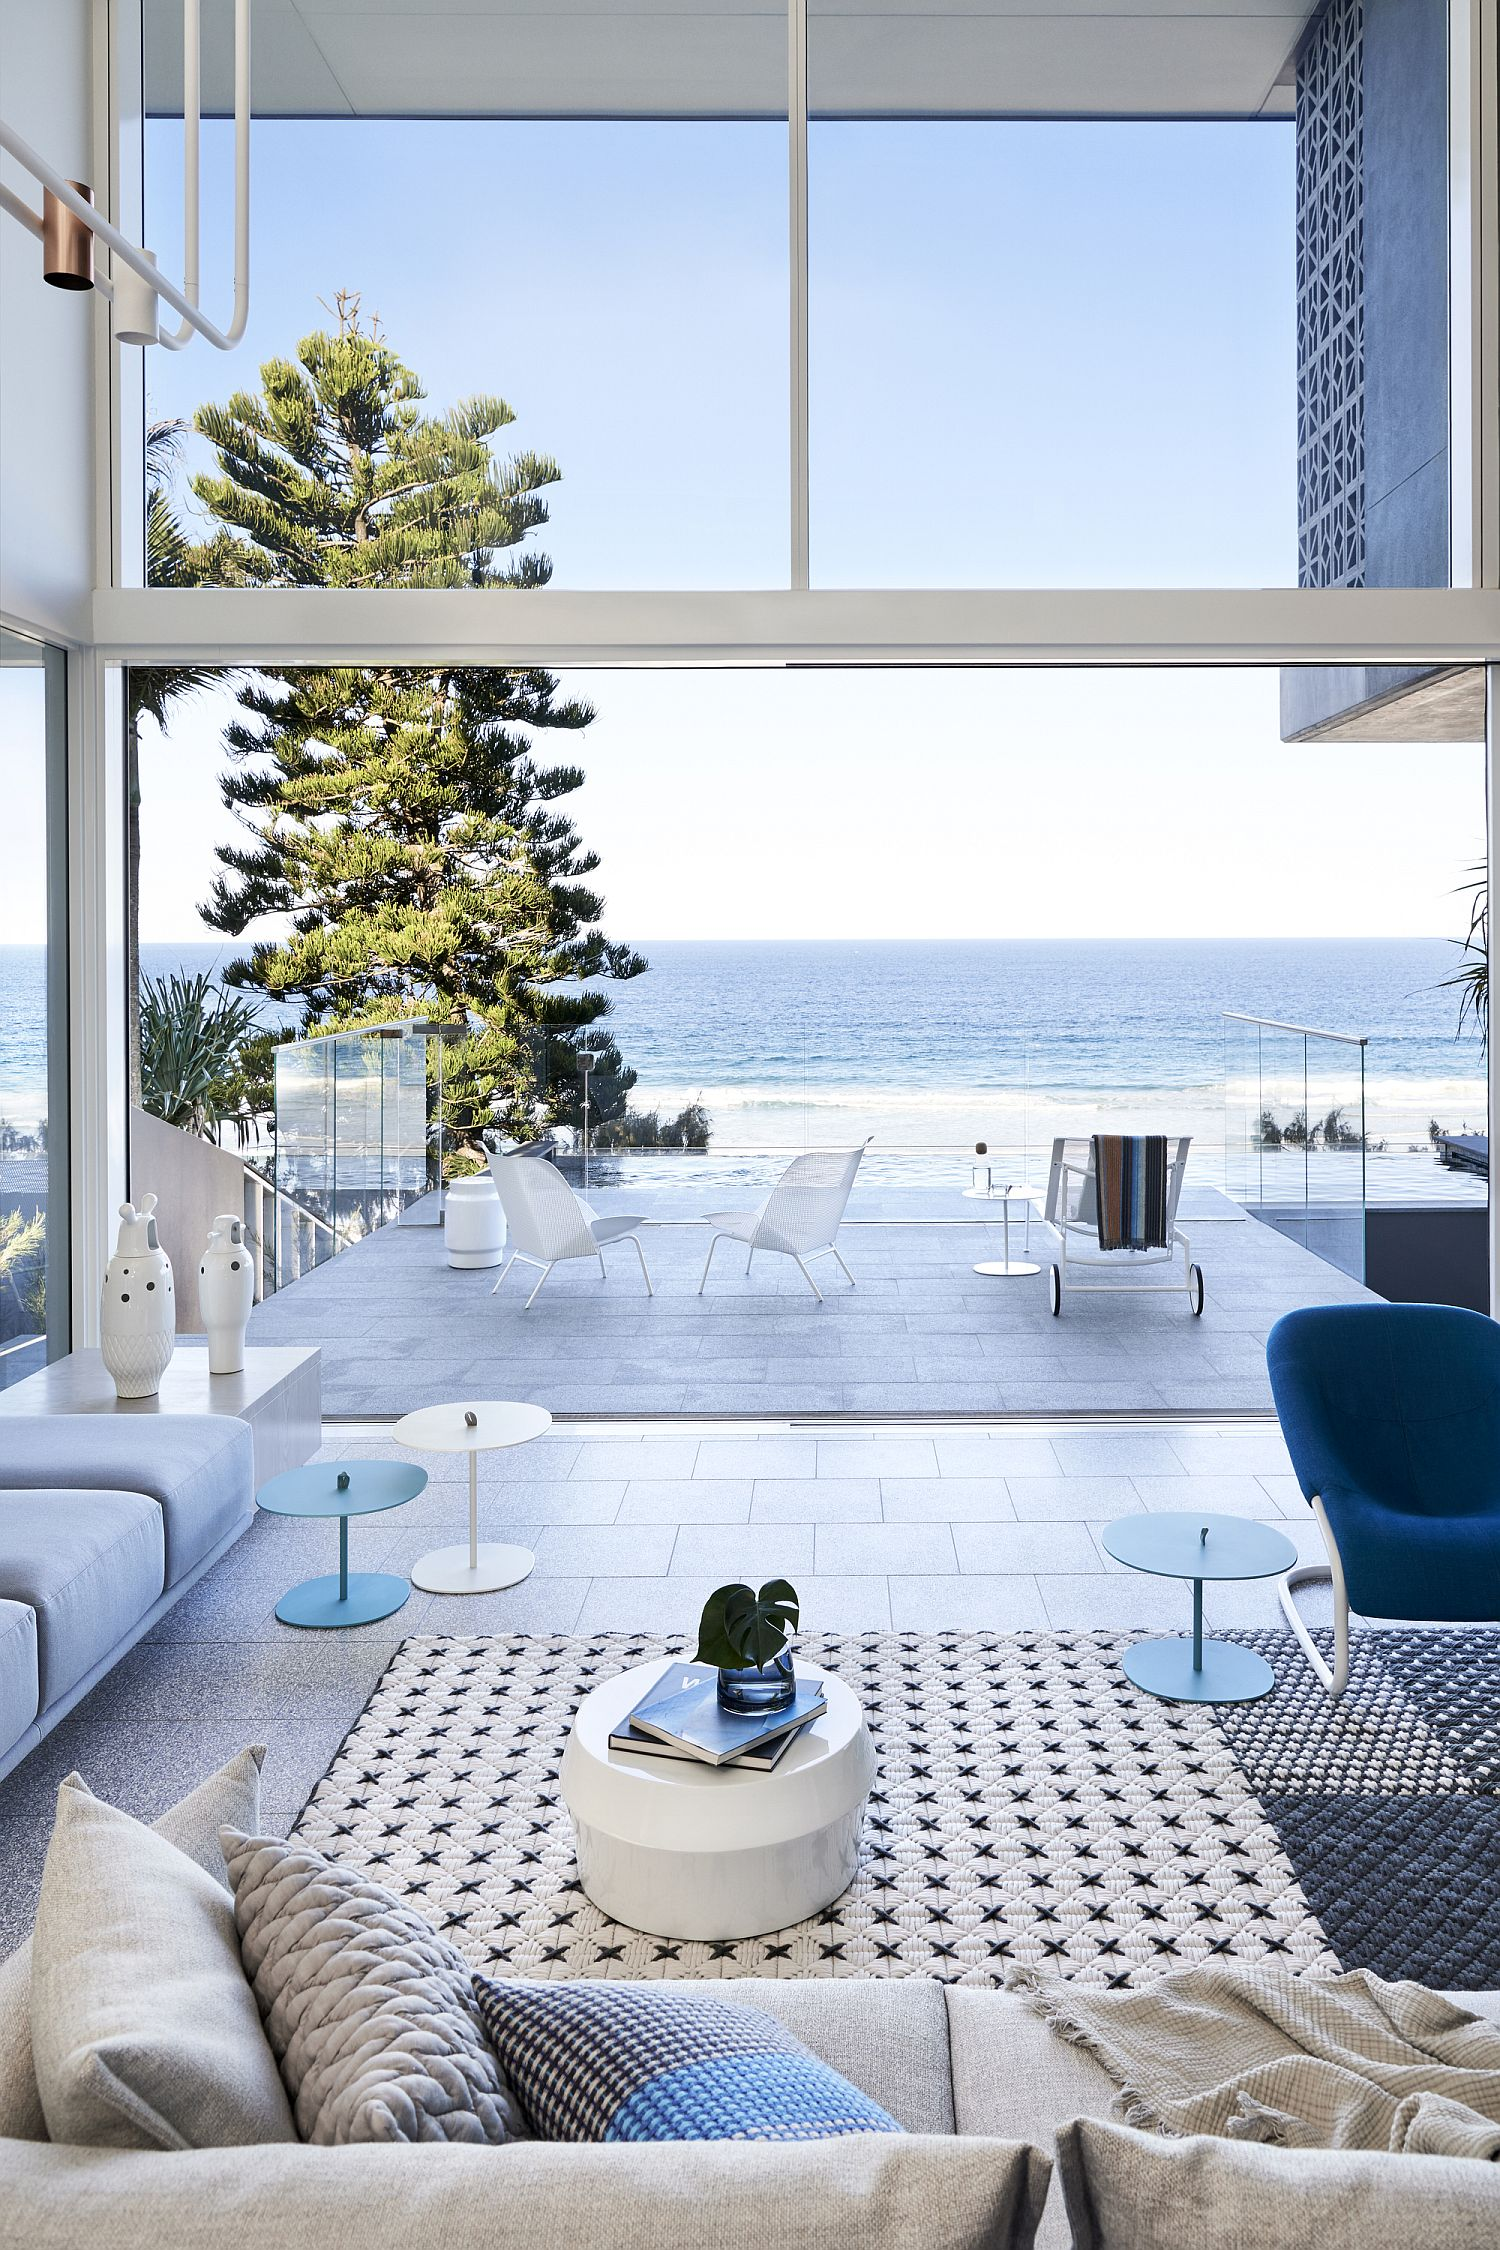 Double-height-deck-and-the-ocean-outside-seem-like-a-natural-extension-of-the-living-room